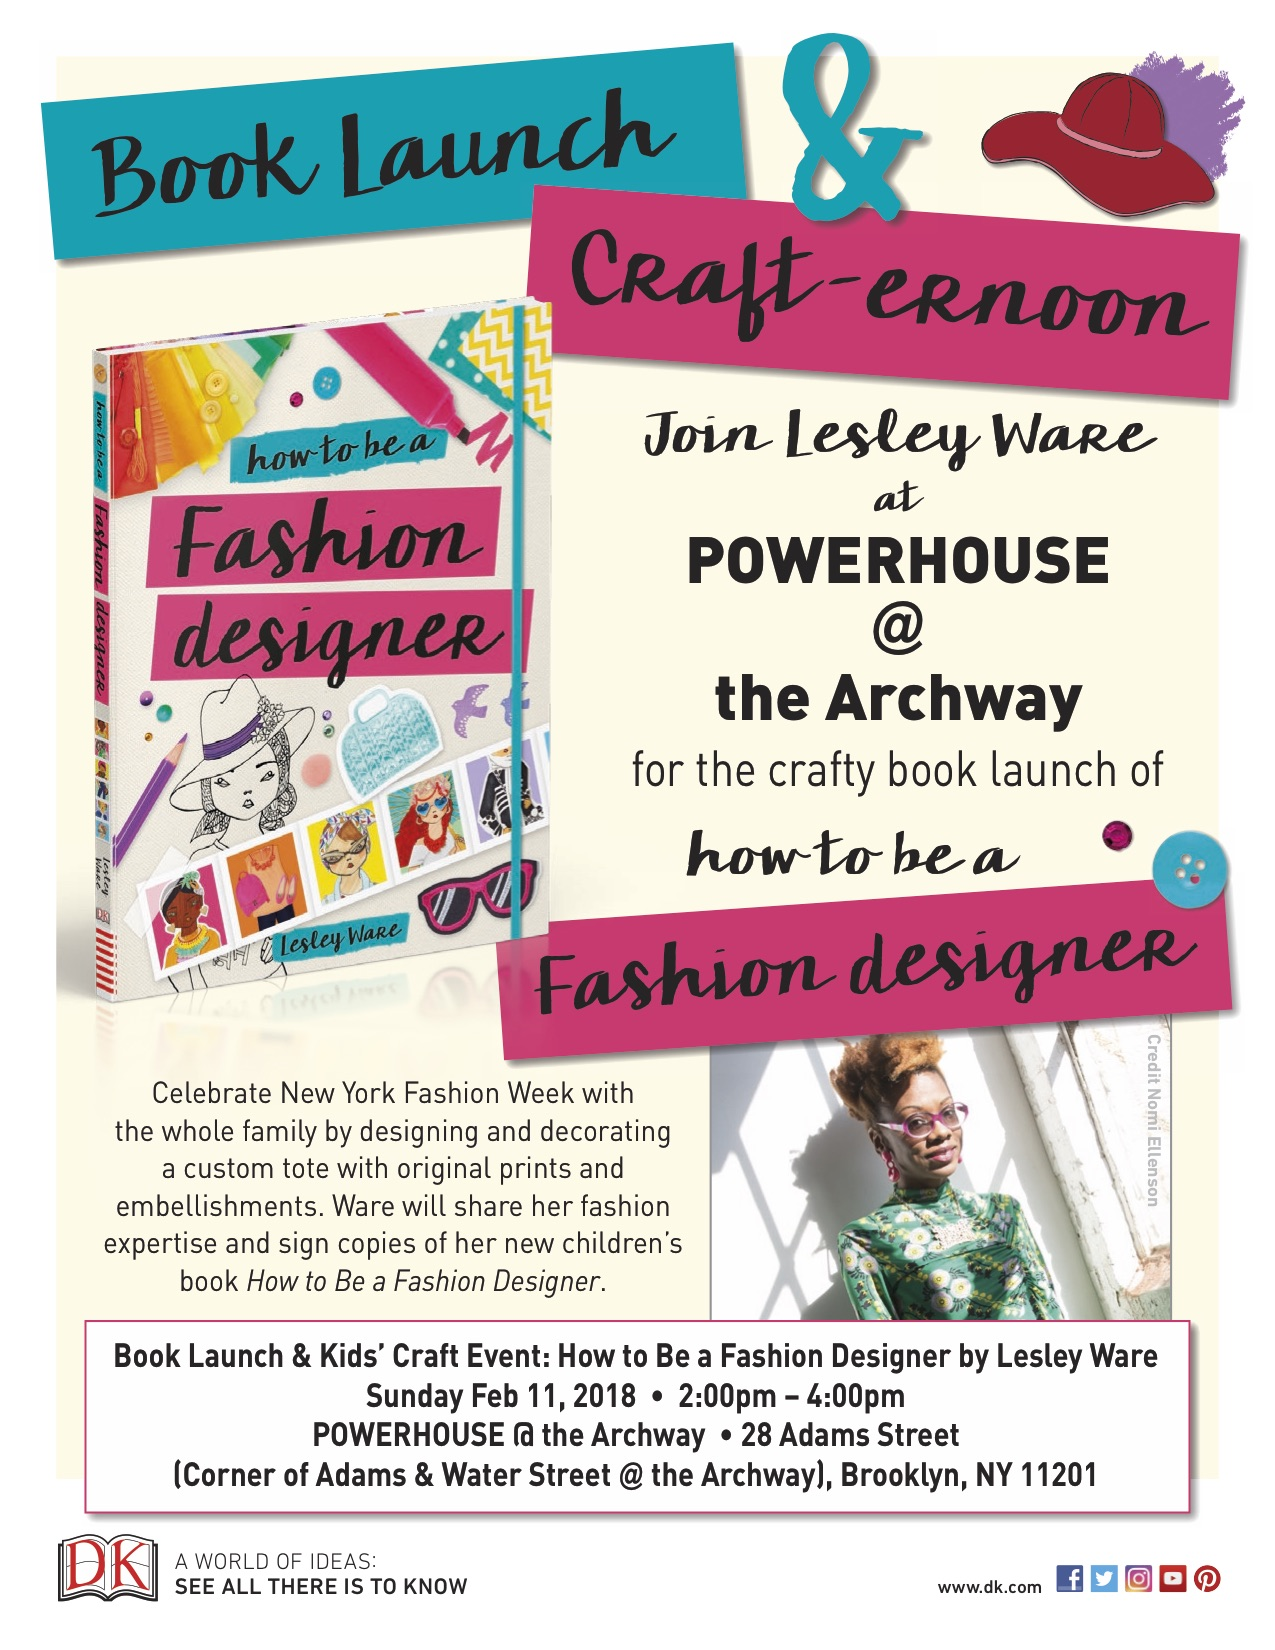 Book Launch Kids Craft Event How To Be A Fashion Designer By Lesley Ware Powerhouse Arena